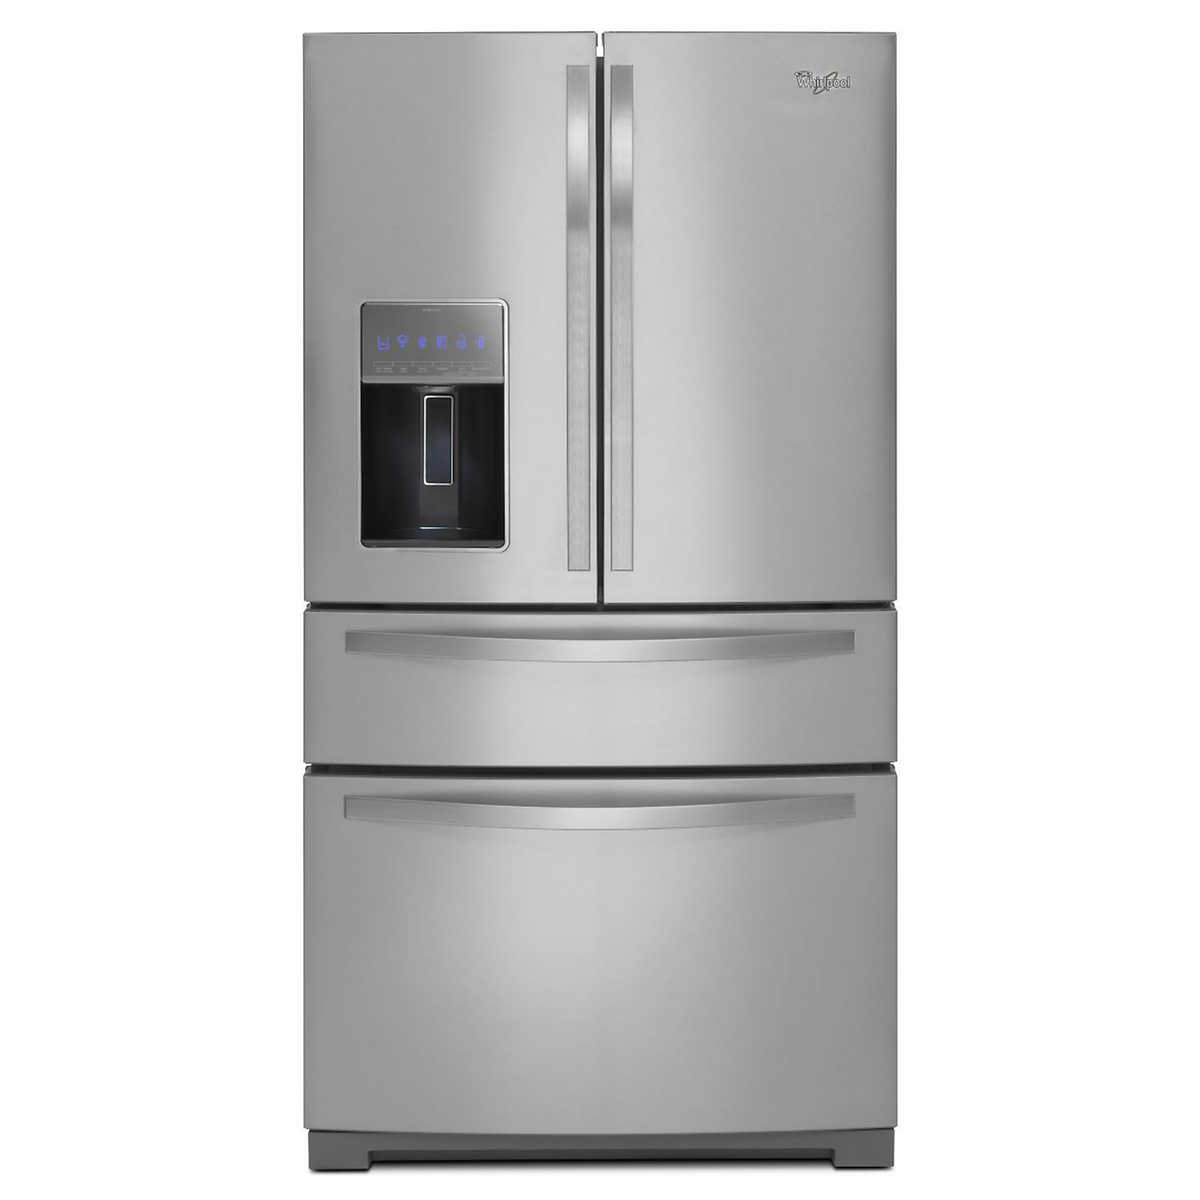 Whirlpool white ice refrigerator counter depth - Whirlpool 26cuft 4 Door French Door Stainless Steel Refrigerator With More Flexible Storage